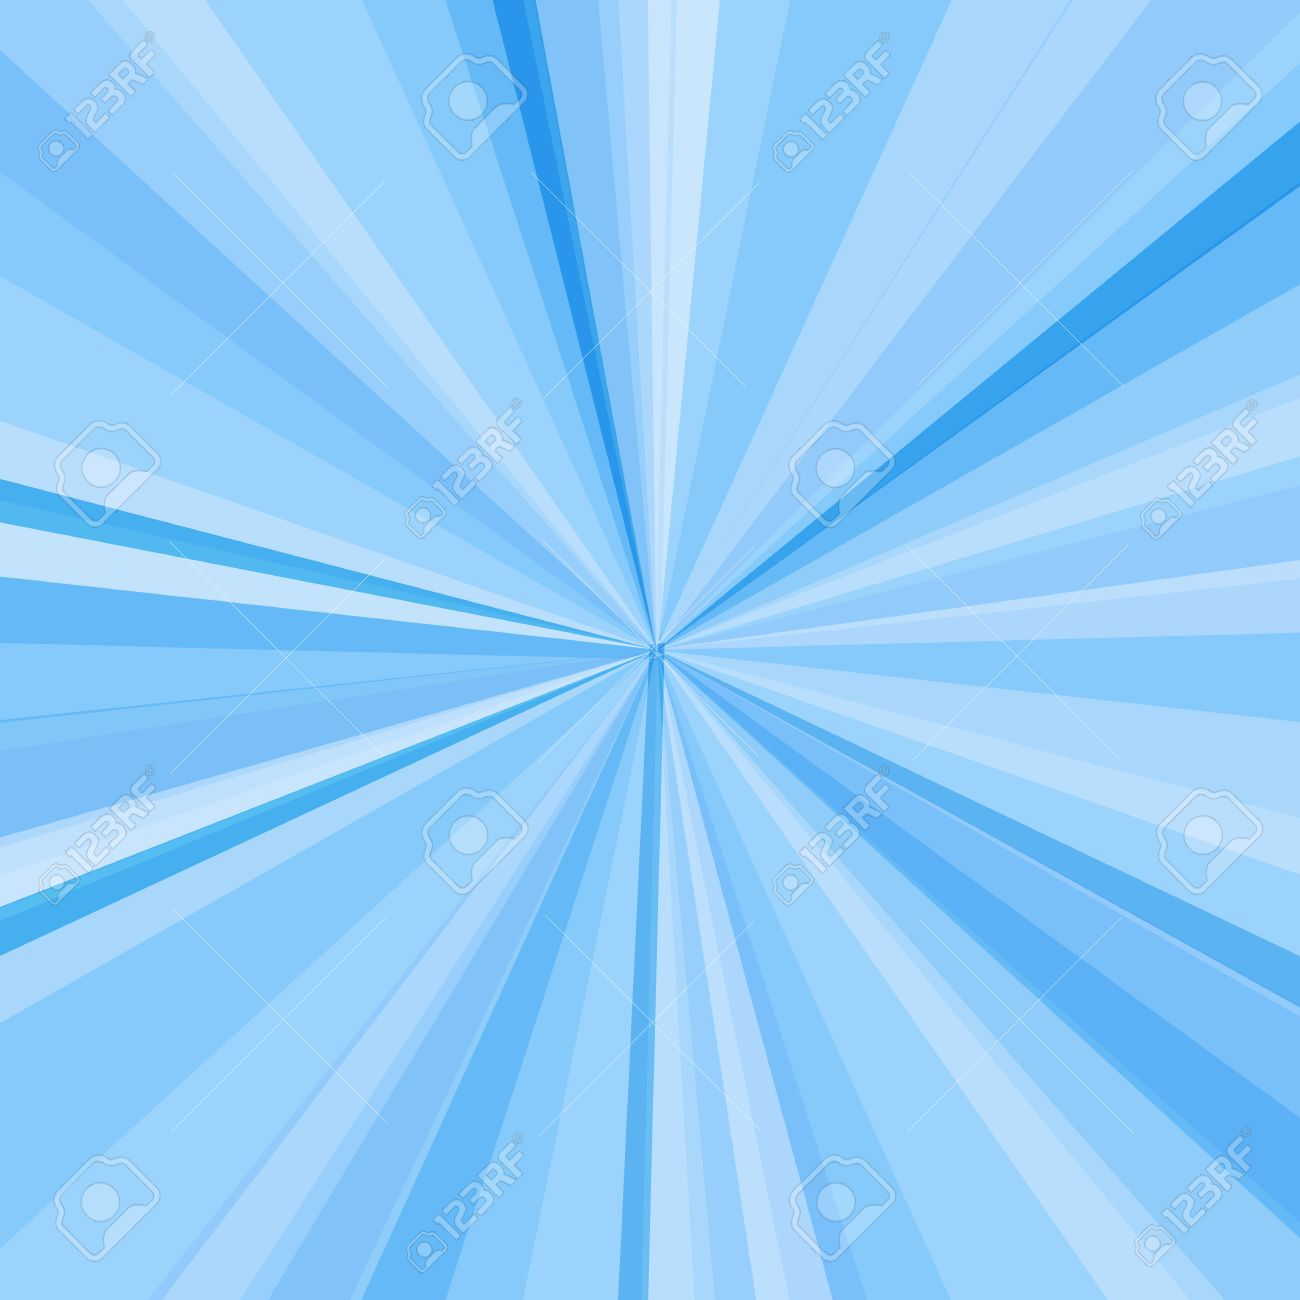 Sunbeam, Blue Rays Illustration Abstract Background Royalty Free ...